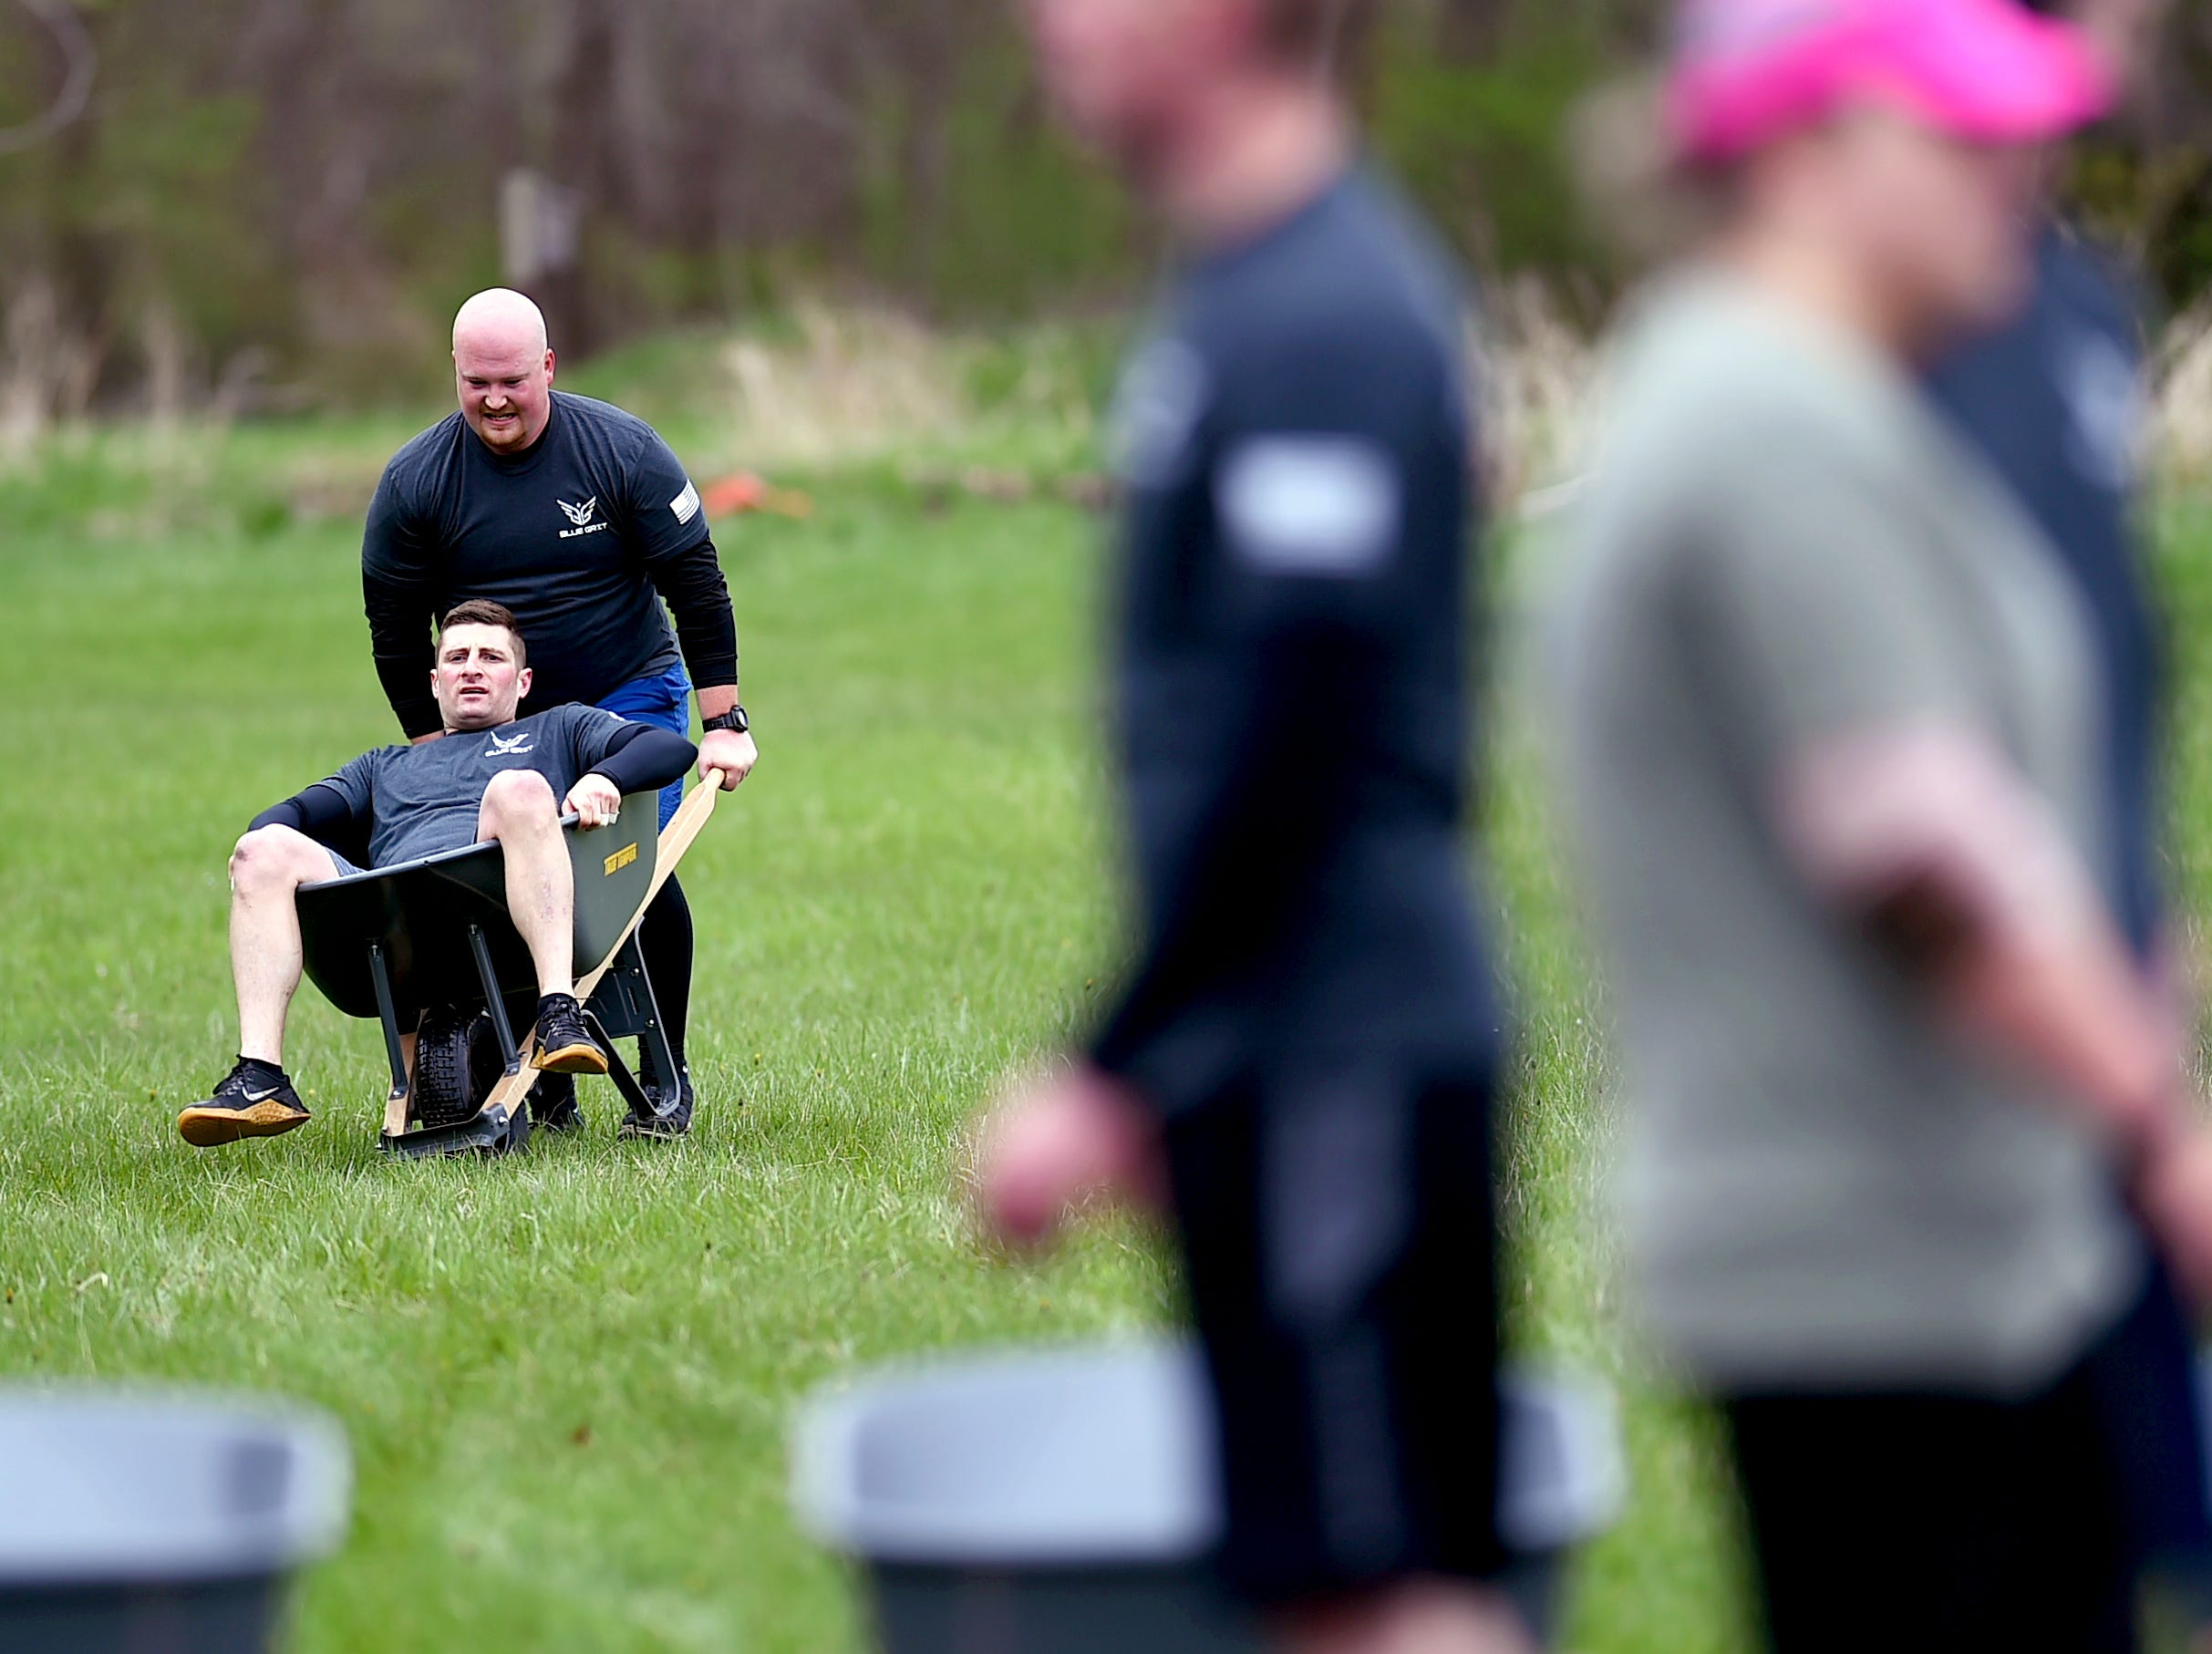 The 7th Annual Mud, Sweat and Cheers Extreme Fitness Challenge was held on Saturday, April 27, 2019 at Island Health and Fitness in Ithaca. The 5K obstacle course race is held in honor of Marine Cpl. Christopher Bordoni, an Ithaca native who died in 2012 after being wounded while conducting combat operations in Afghanistan.